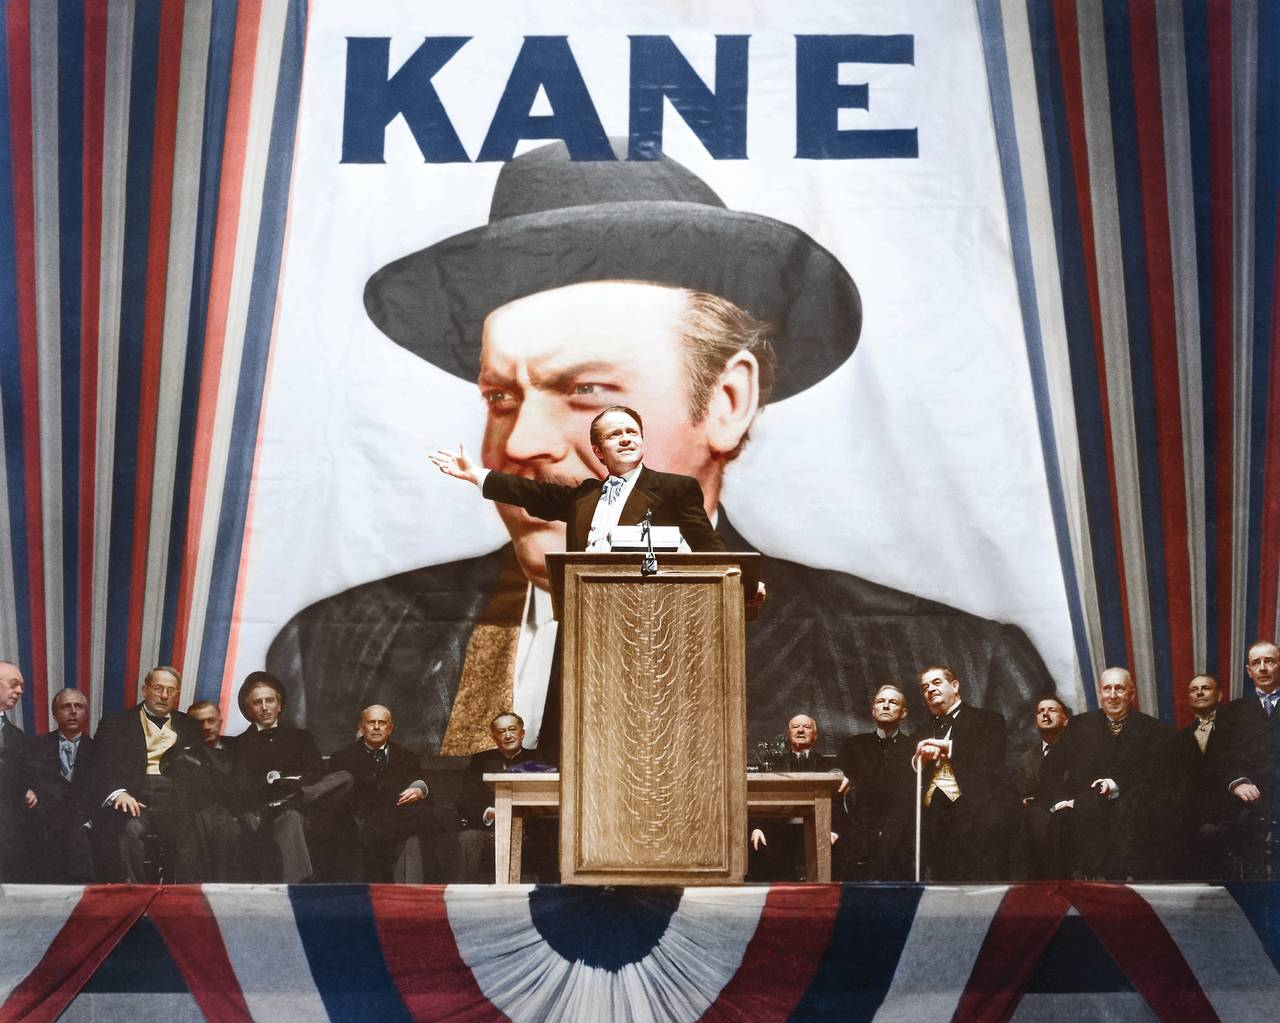 essay on citizen kane Citizen kane is a film open to many interpretations and analyses it tells the story of its main character through the complex points of view of those who knew him.